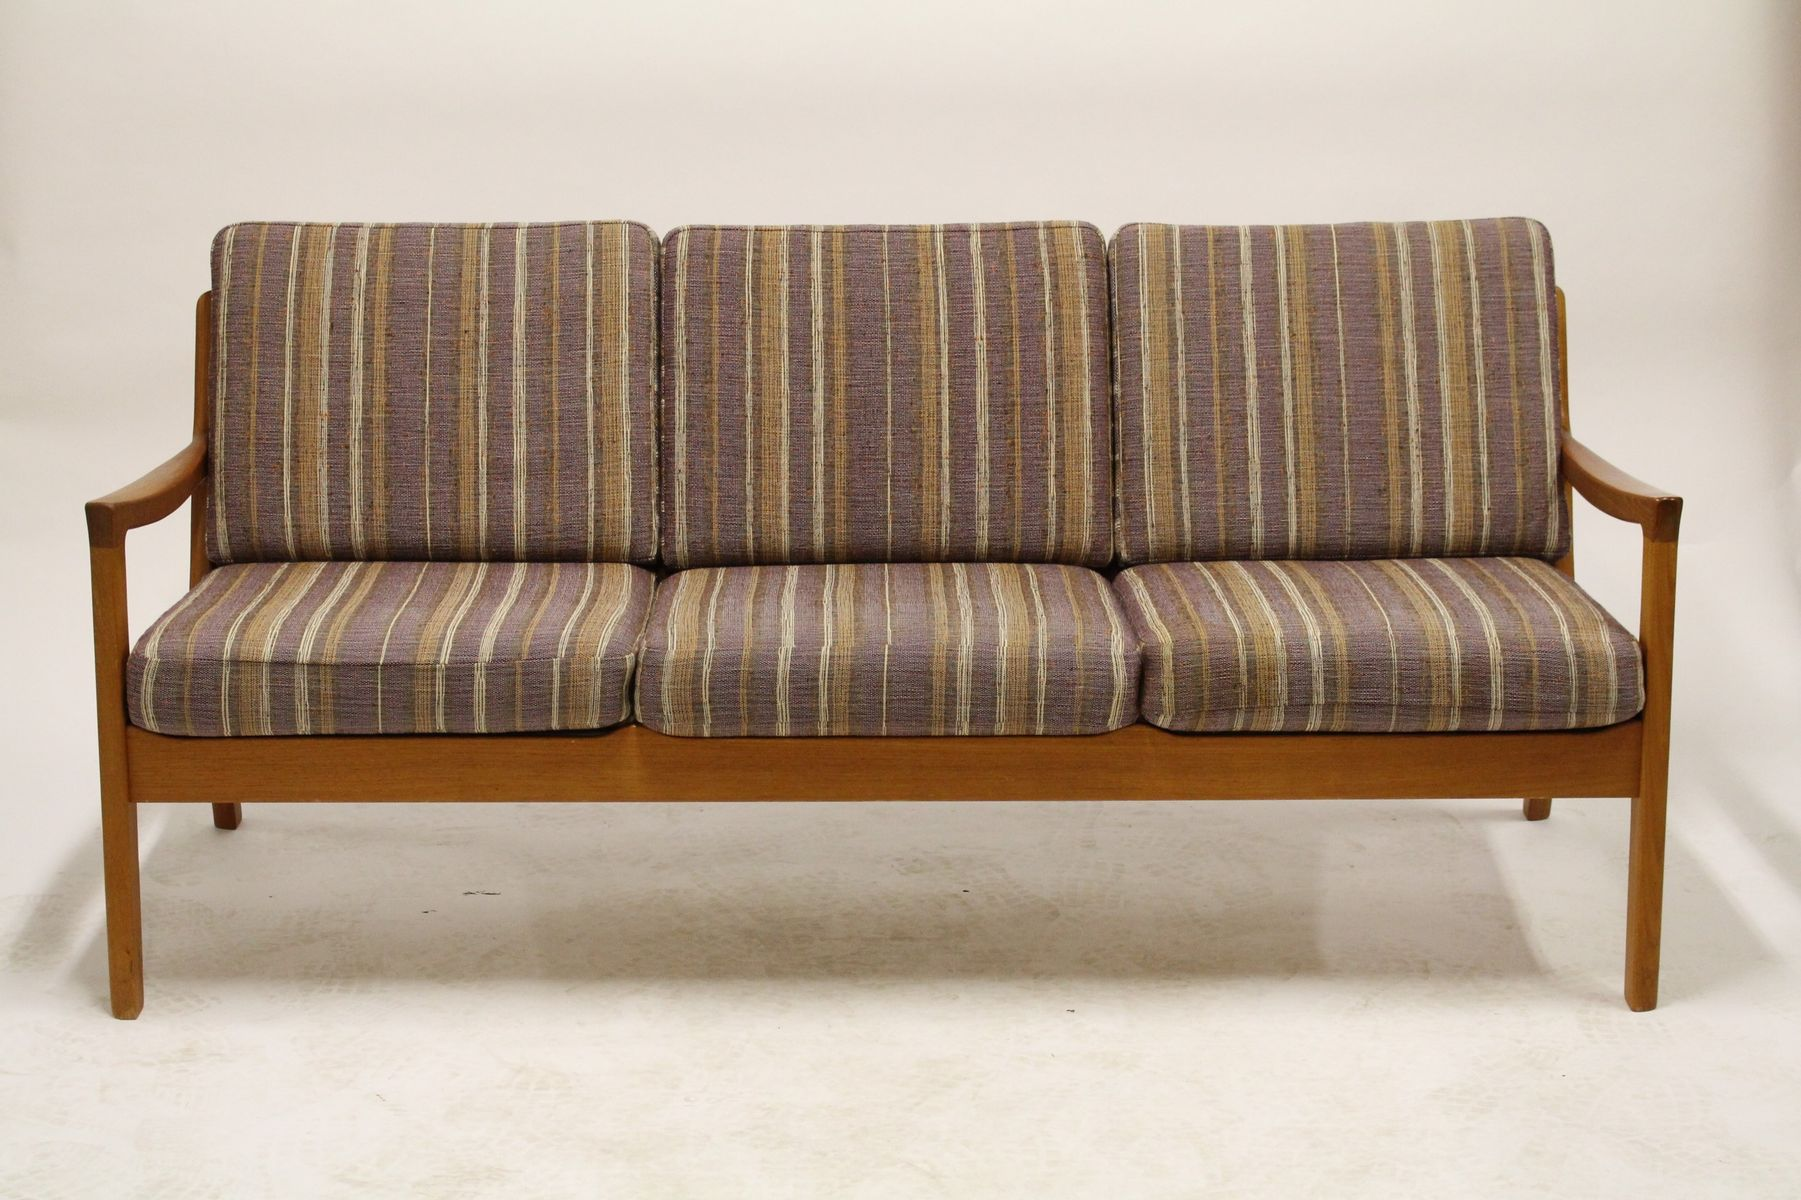 Vintage Senator Sofa by Ole Wanscher for Cado 1960s for sale at